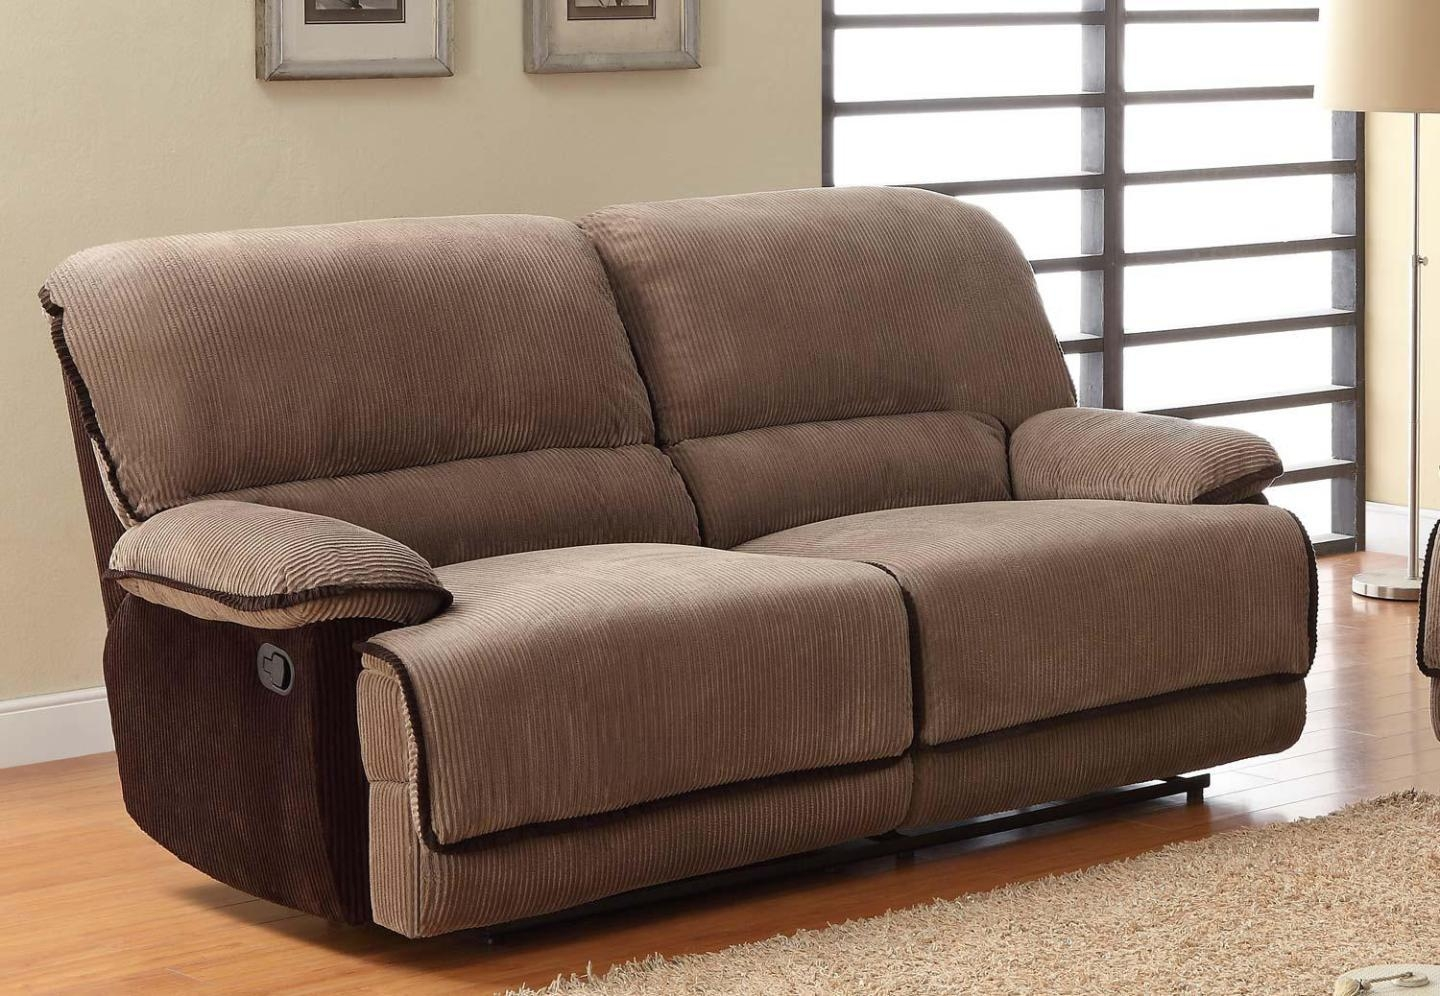 Furniture: Sofa Recliner Covers | Sofa Covers For Recliners Pertaining To Sofa Armchair Covers (View 3 of 20)